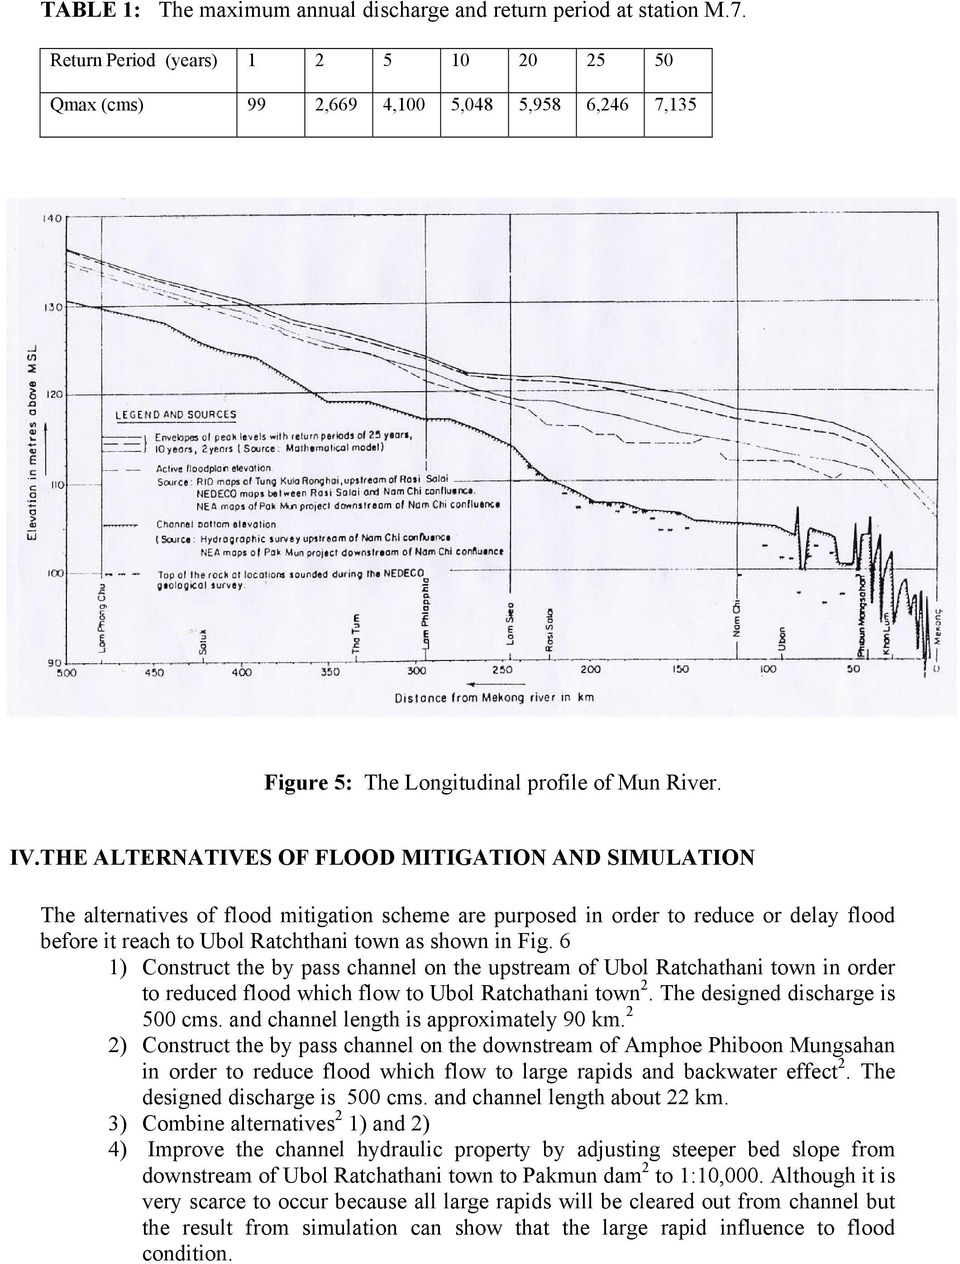 THE ALTERNATIVES OF FLOOD MITIGATION AND SIMULATION The alternatives of flood mitigation scheme are purposed in order to reduce or delay flood before it reach to Ubol Ratchthani town as shown in Fig.